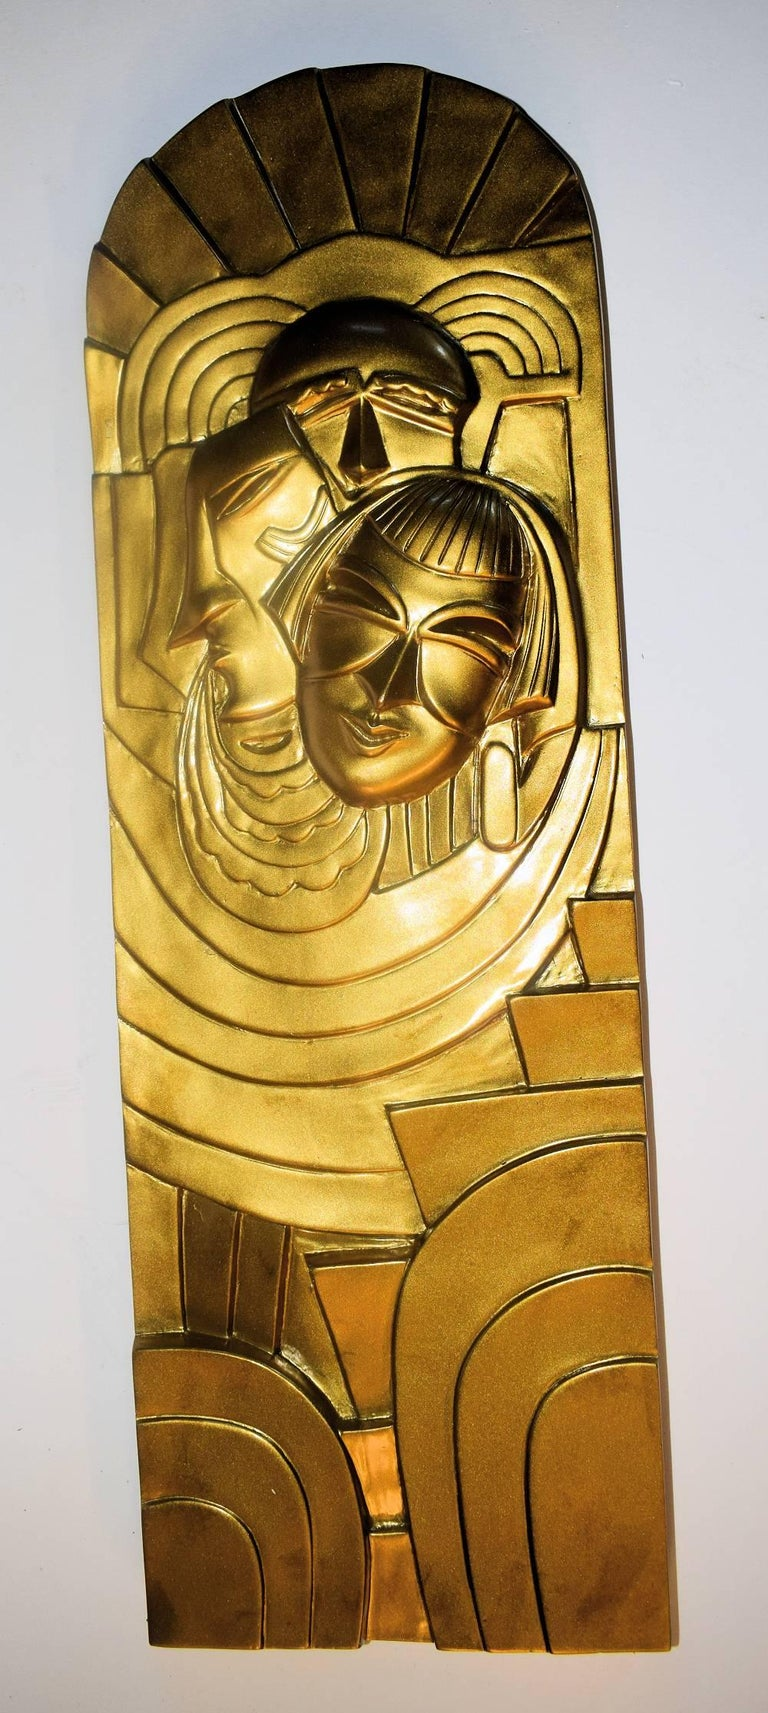 Pair of Art Deco \'Folies Bergeres\' Wall Plaques at 1stdibs